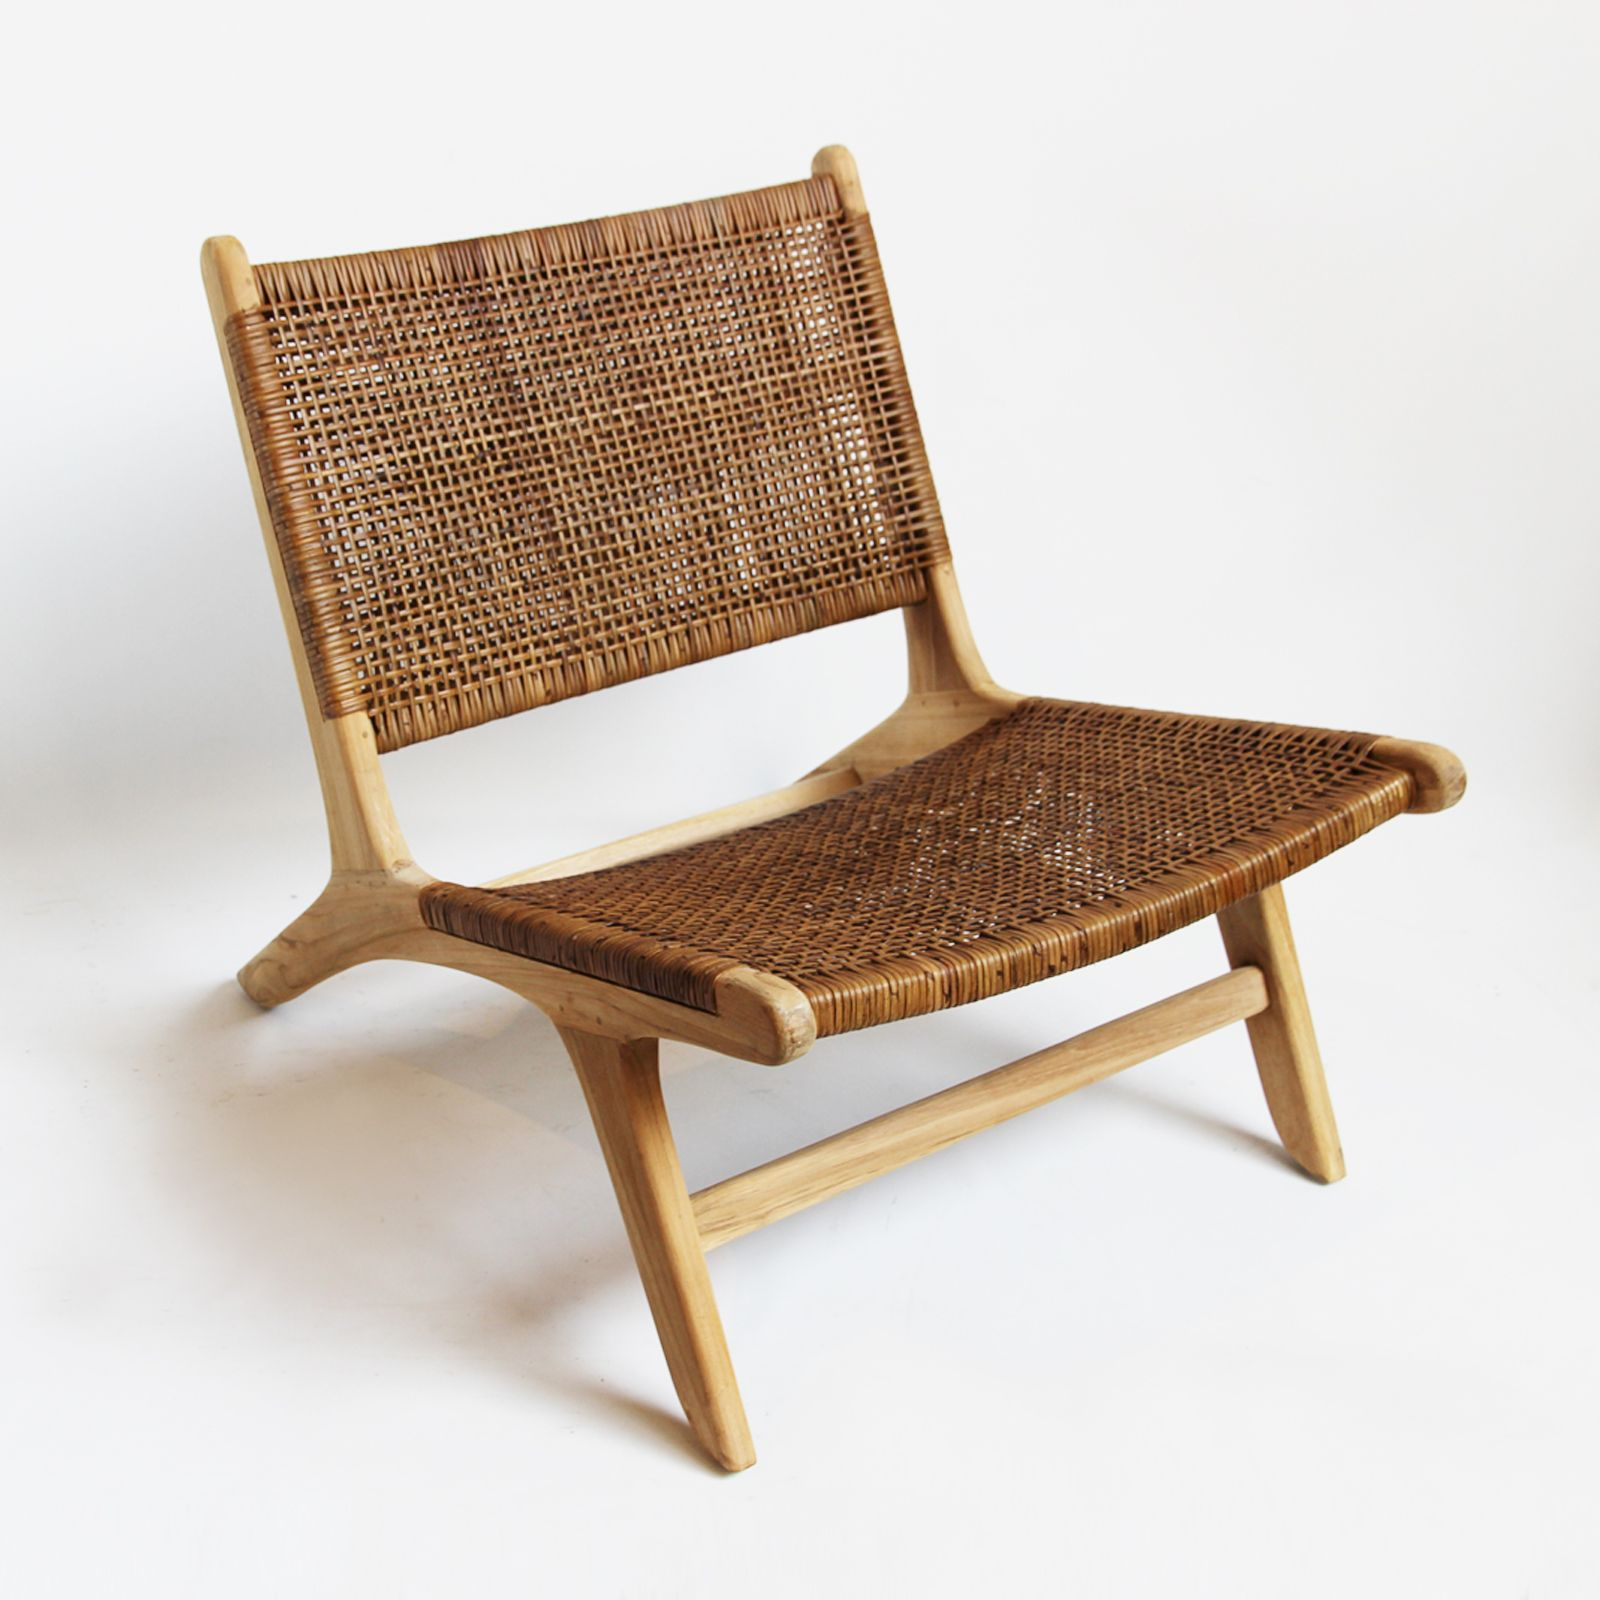 Modern Low Teak And Wicker Weaved Easy Chair. Beautiful Smooth Sanded Teak  Wood With Coffee